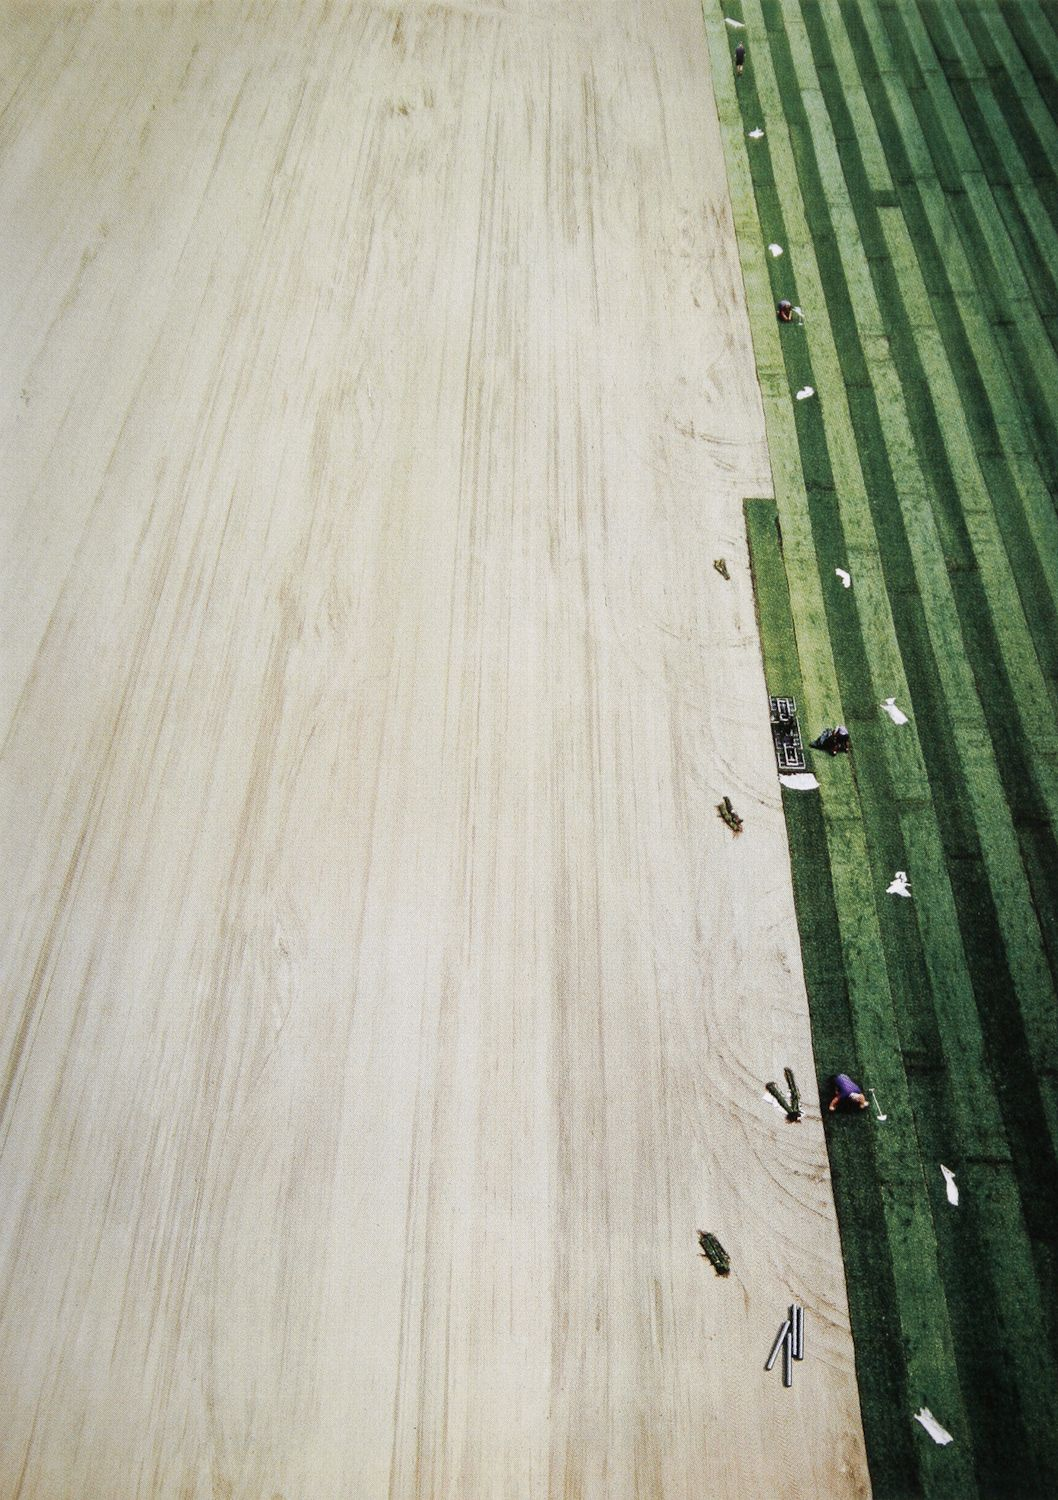 Minimalistische Kunst Andreas Gursky Architecture And Landscape Pinterest